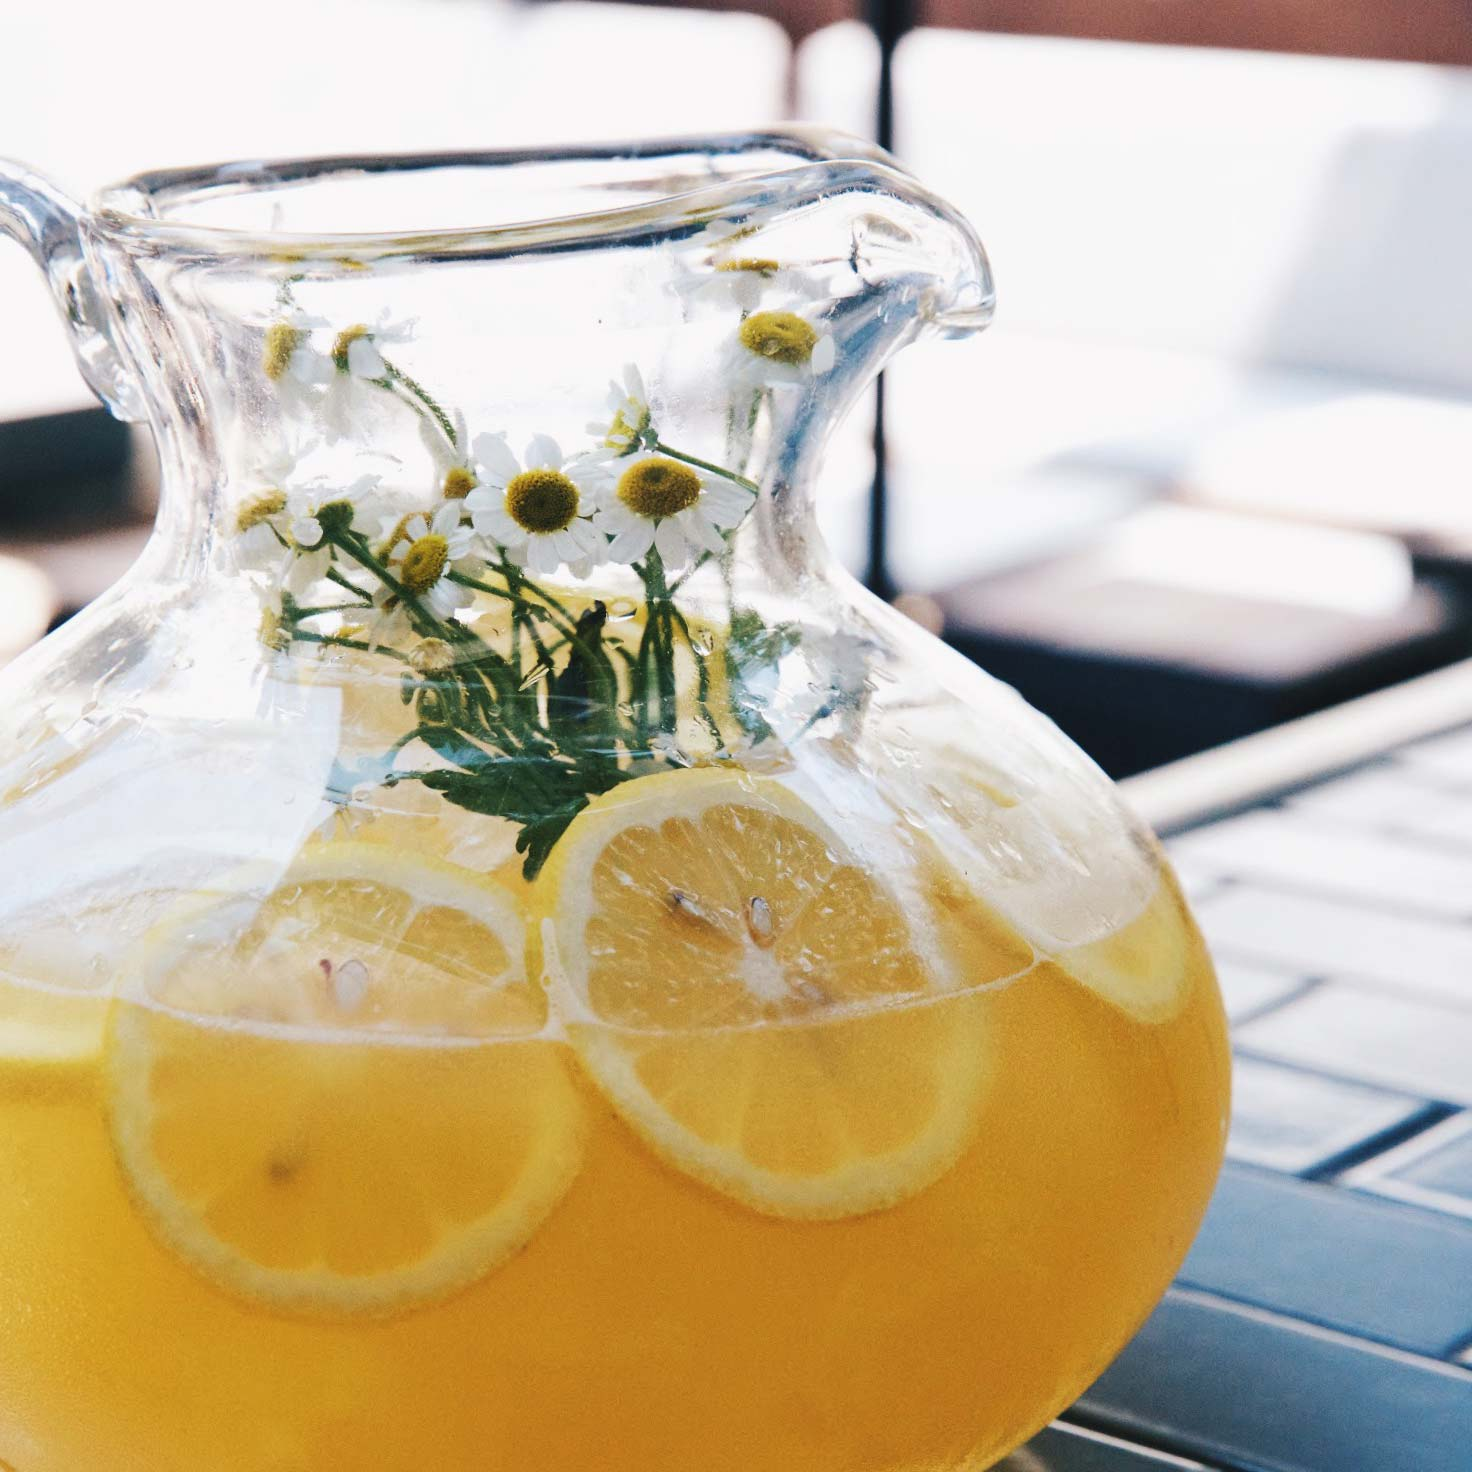 Celebrate National Lemonade Day With This Boozy Pitcher